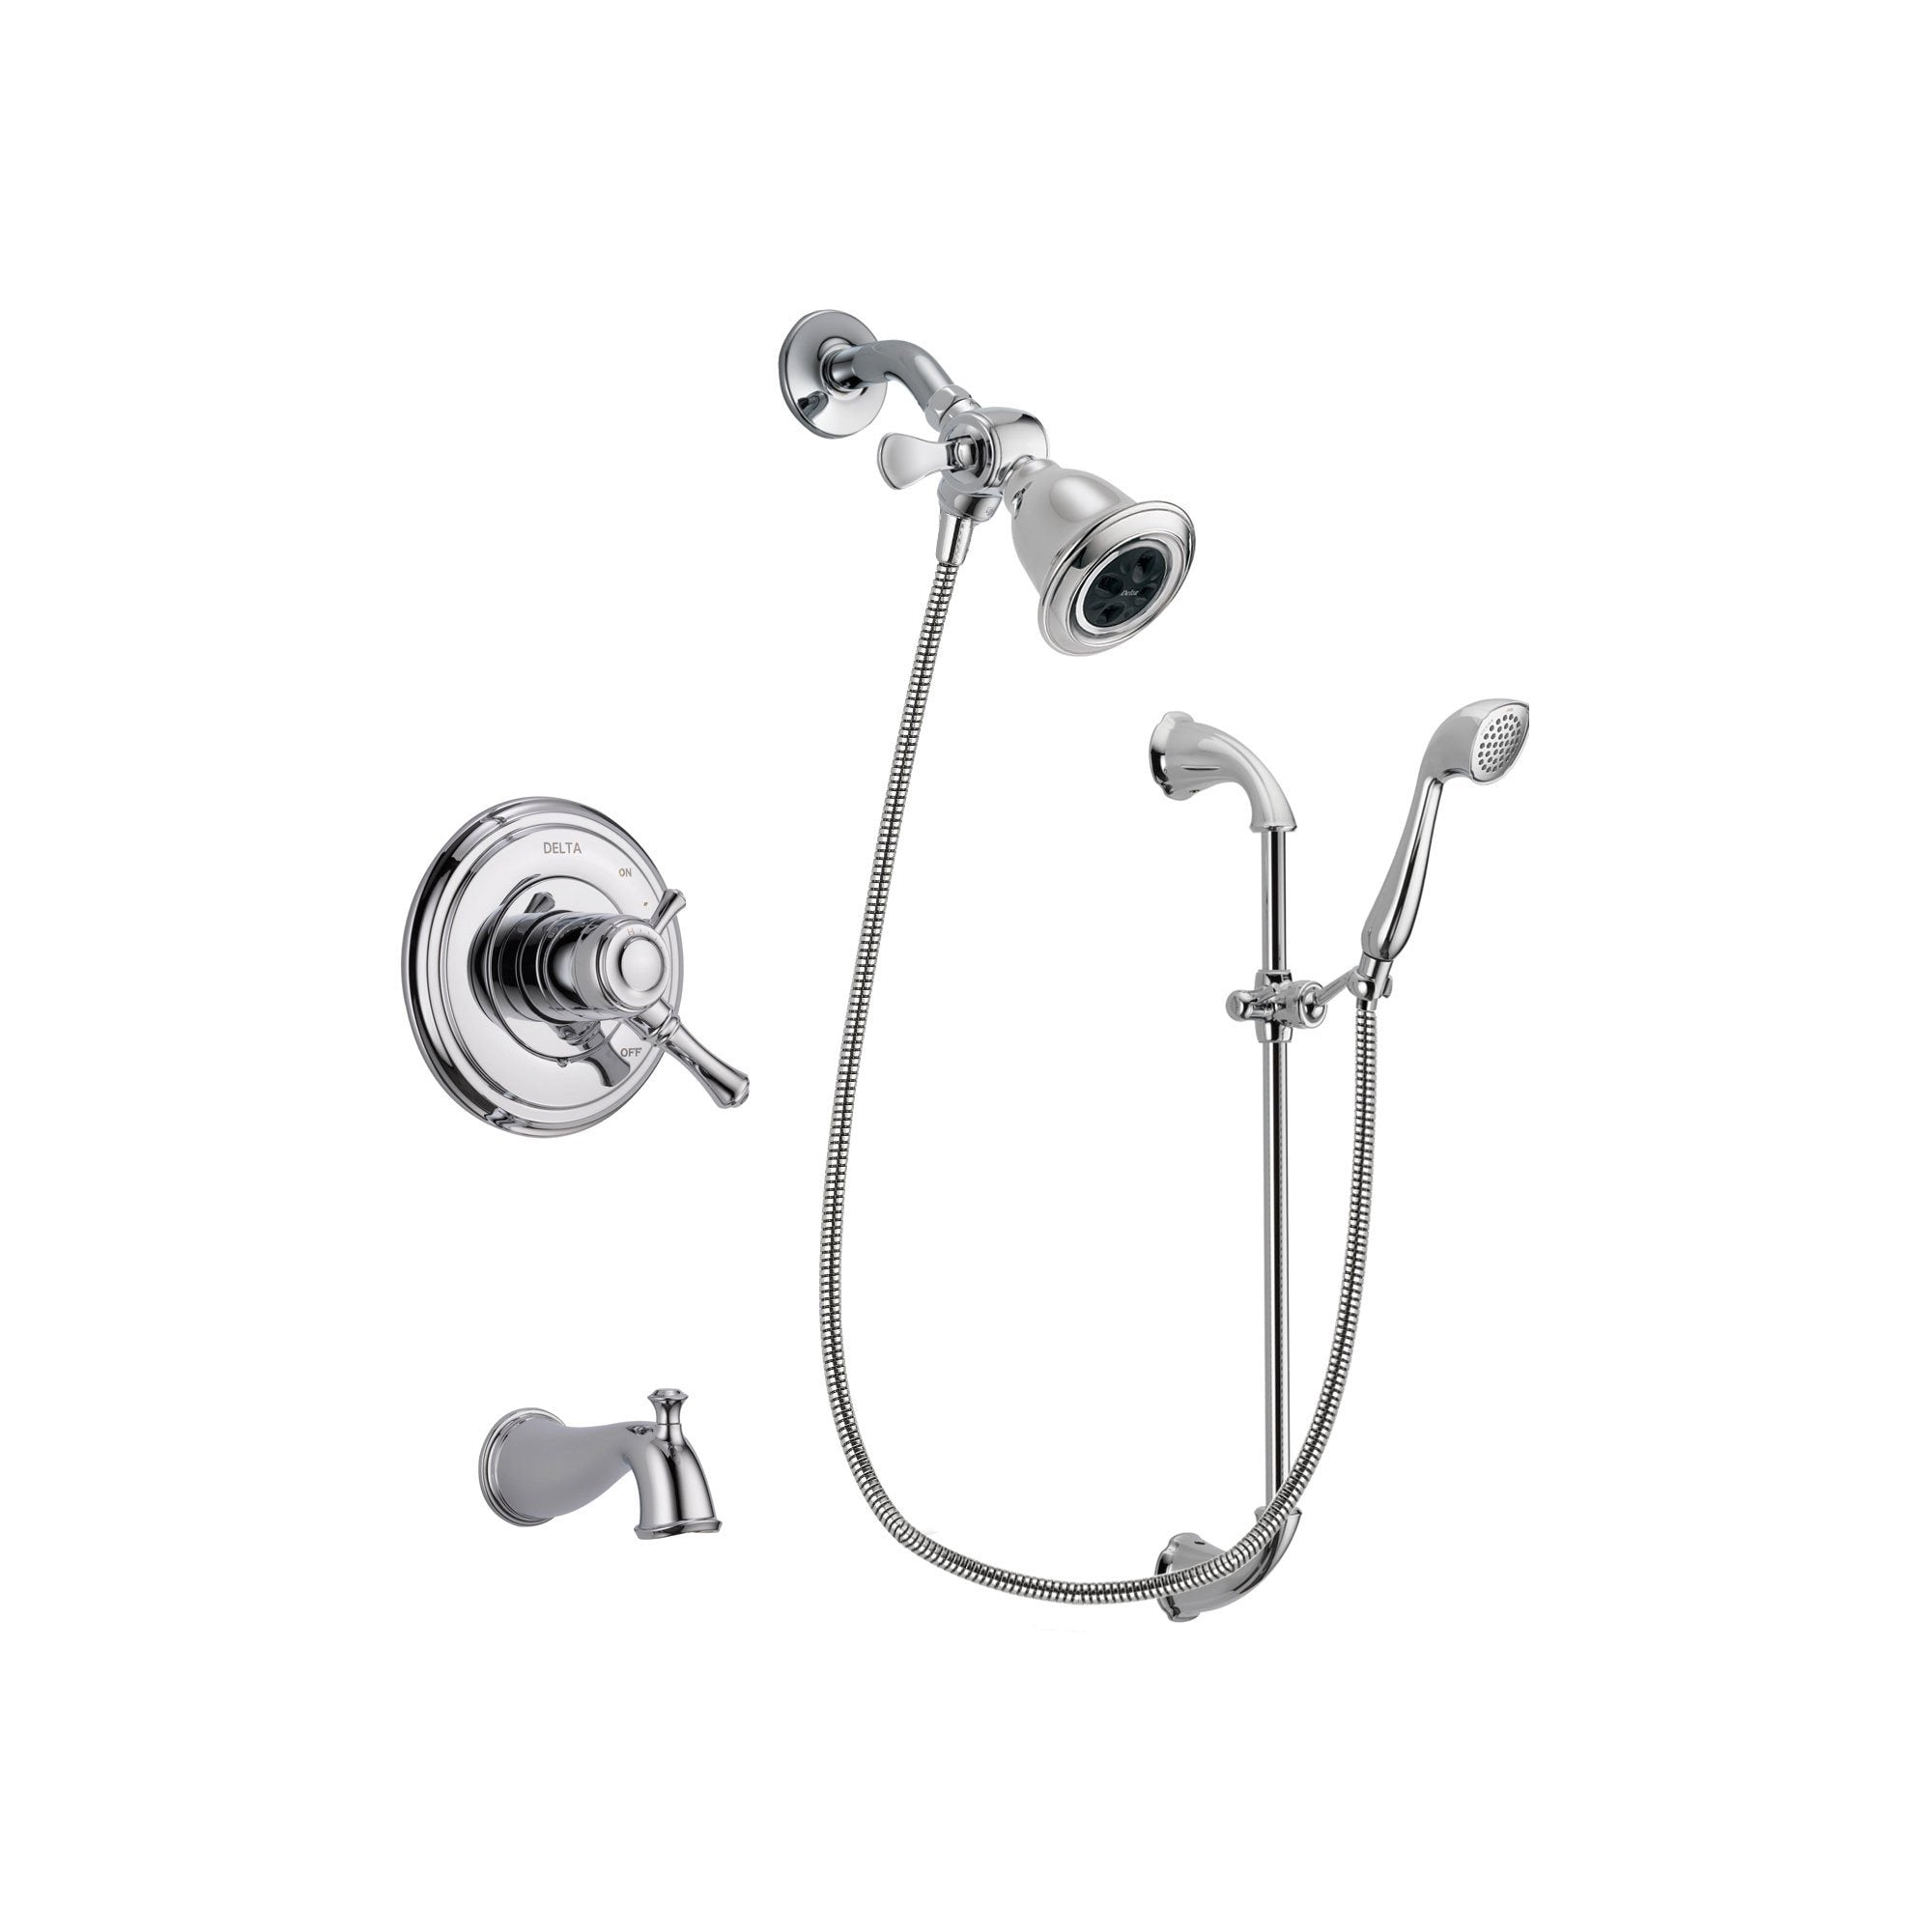 Delta Cassidy Chrome Tub and Shower Faucet System with Hand Shower DSP0899V